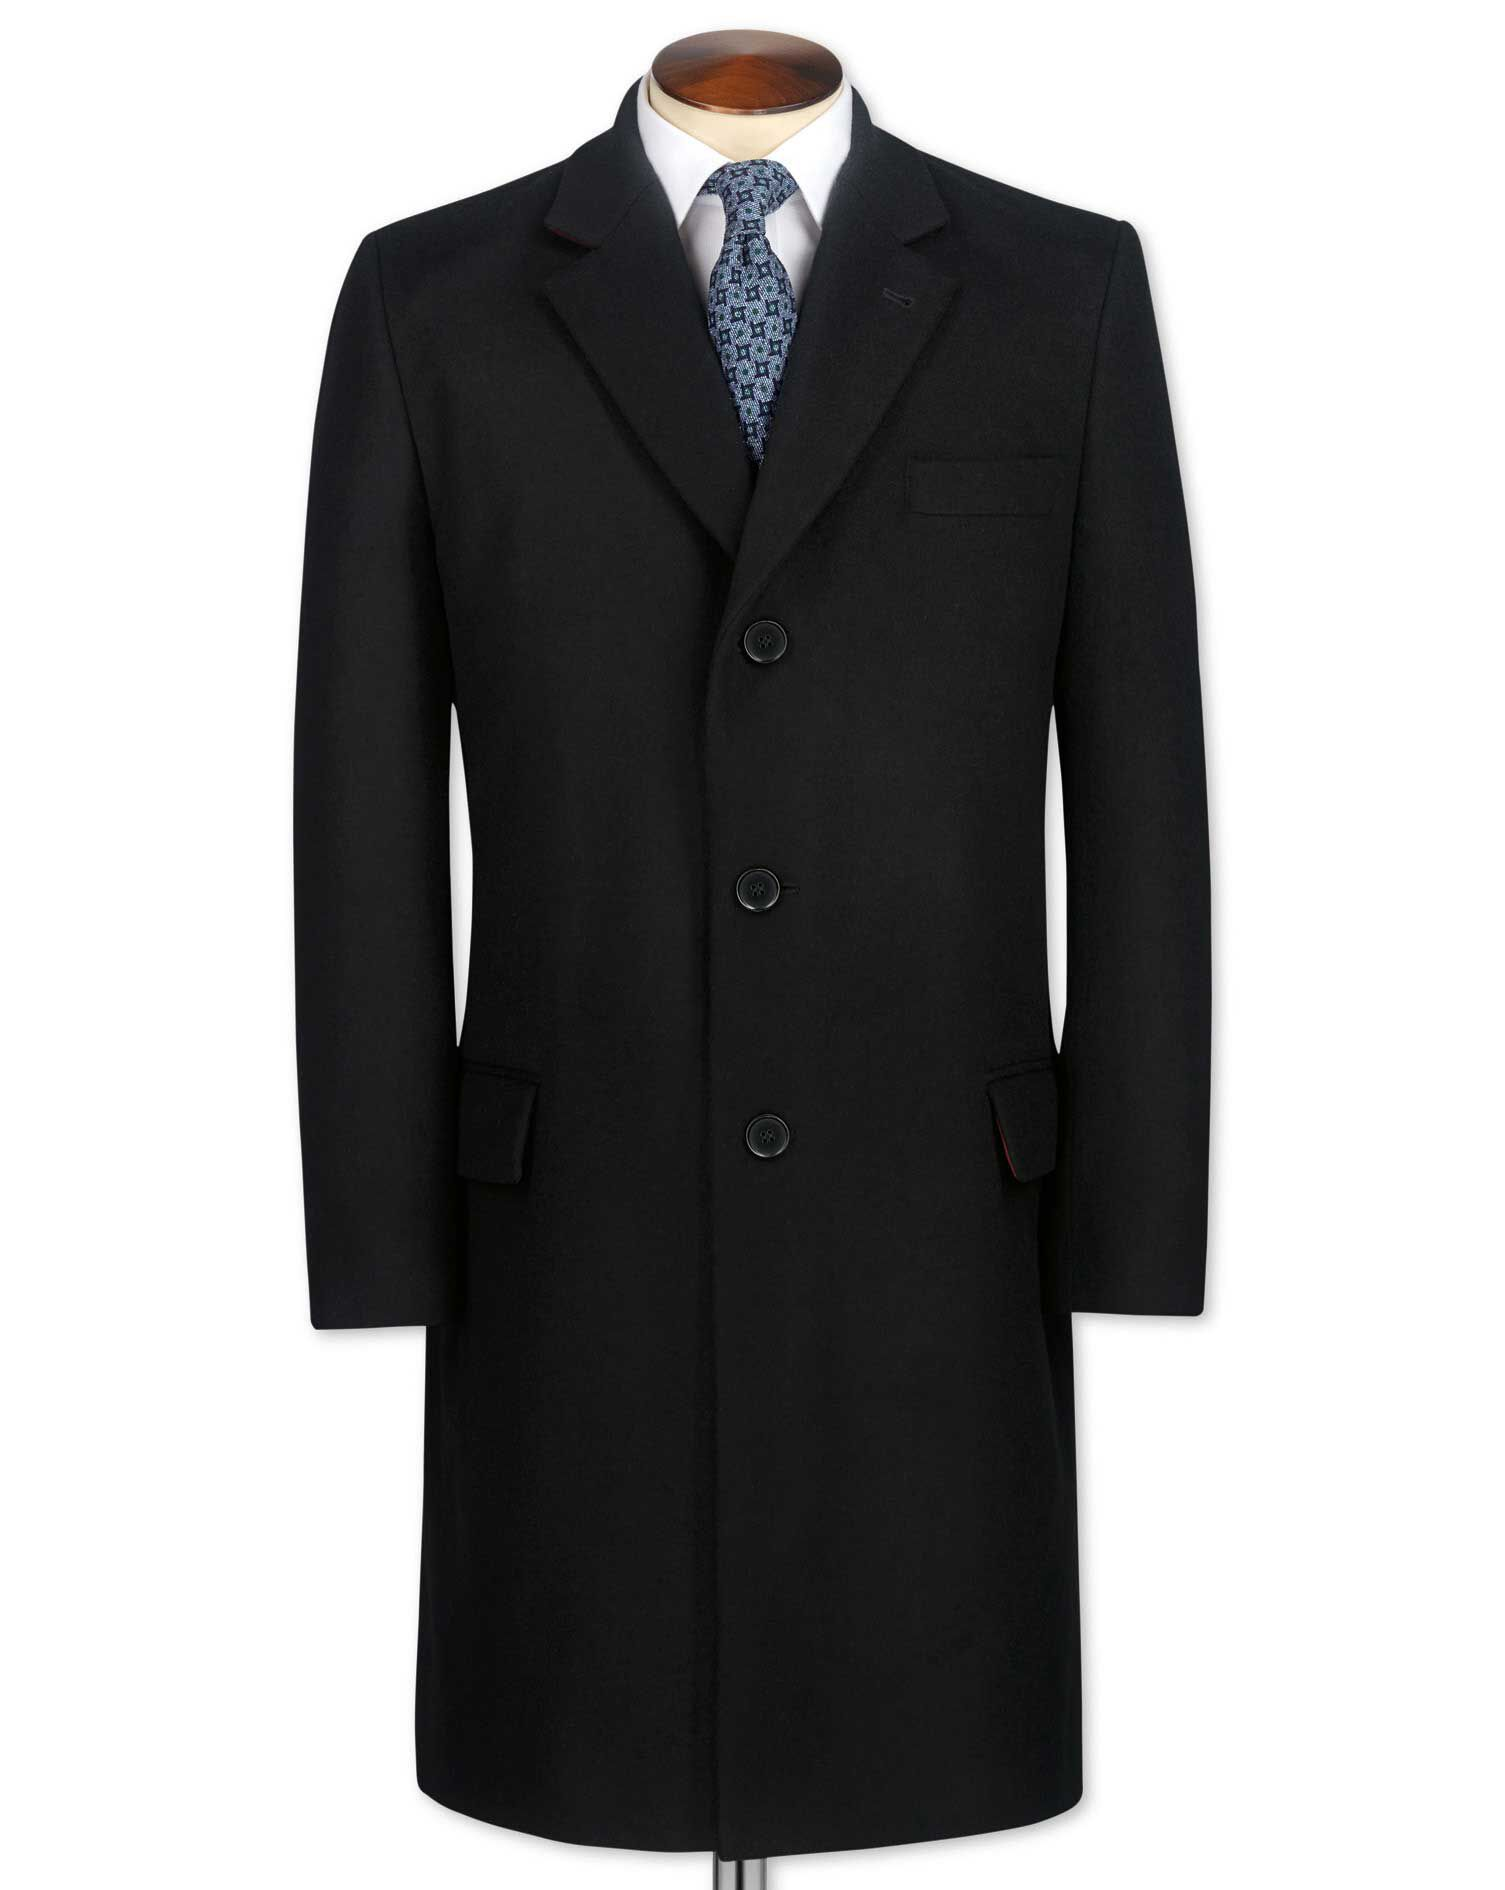 Slim Fit Black Wool and Cashmere Overcoat Size 46 by Charles Tyrwhitt